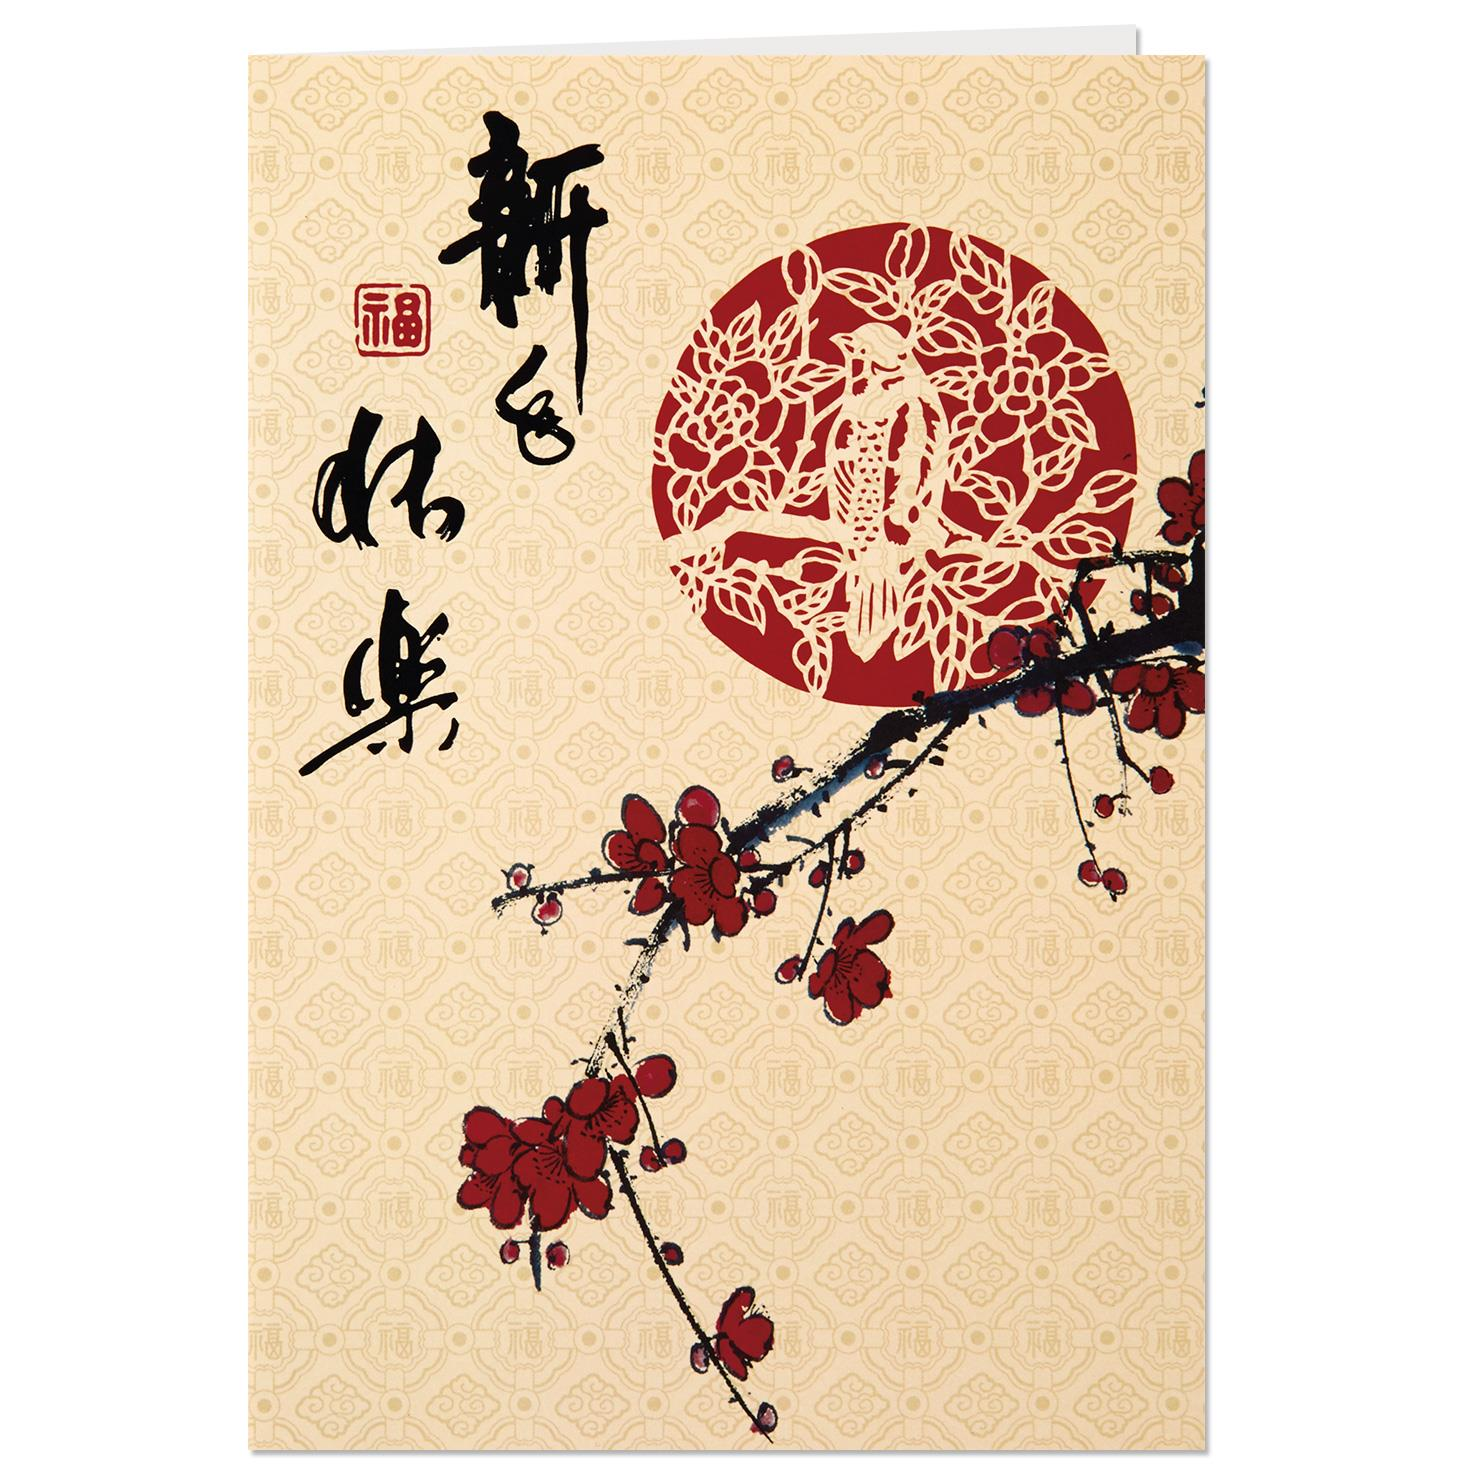 Chinese new year card juvecenitdelacabrera chinese new year card m4hsunfo